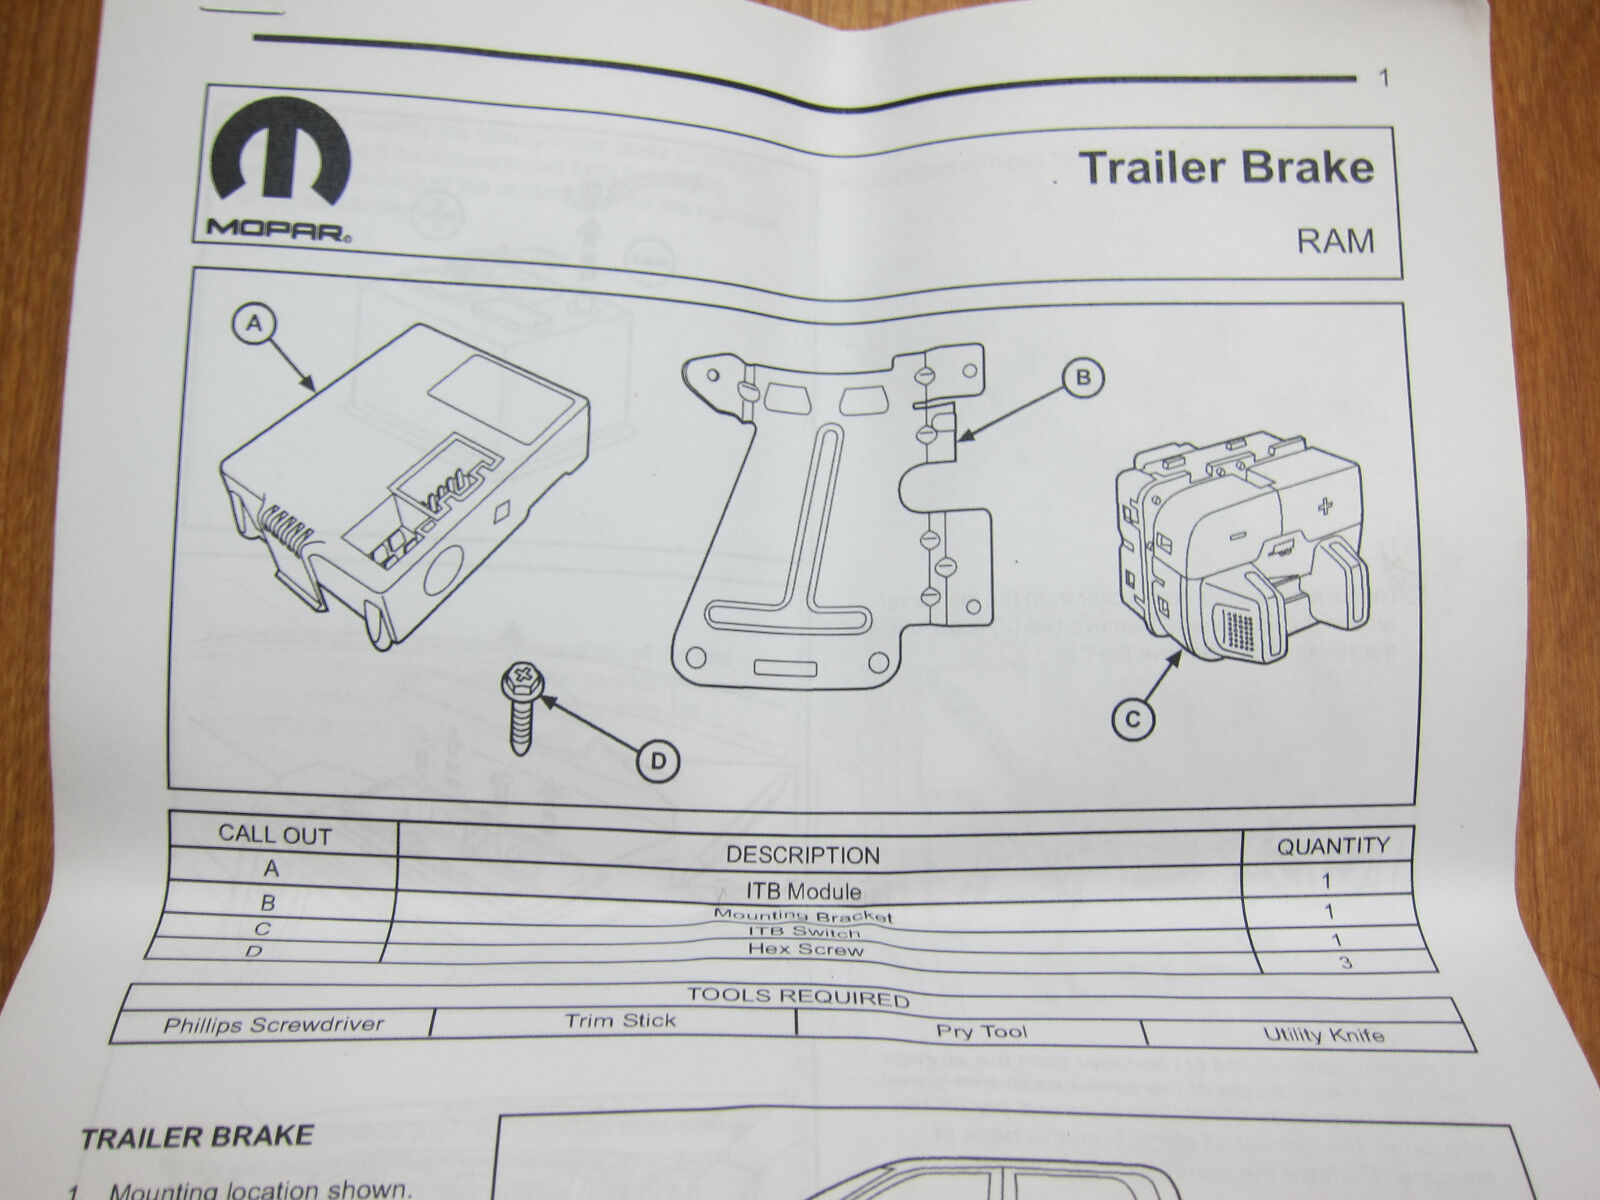 Gm Integrated Trailer Brake Controller Wiring Diagram from i.ebayimg.com